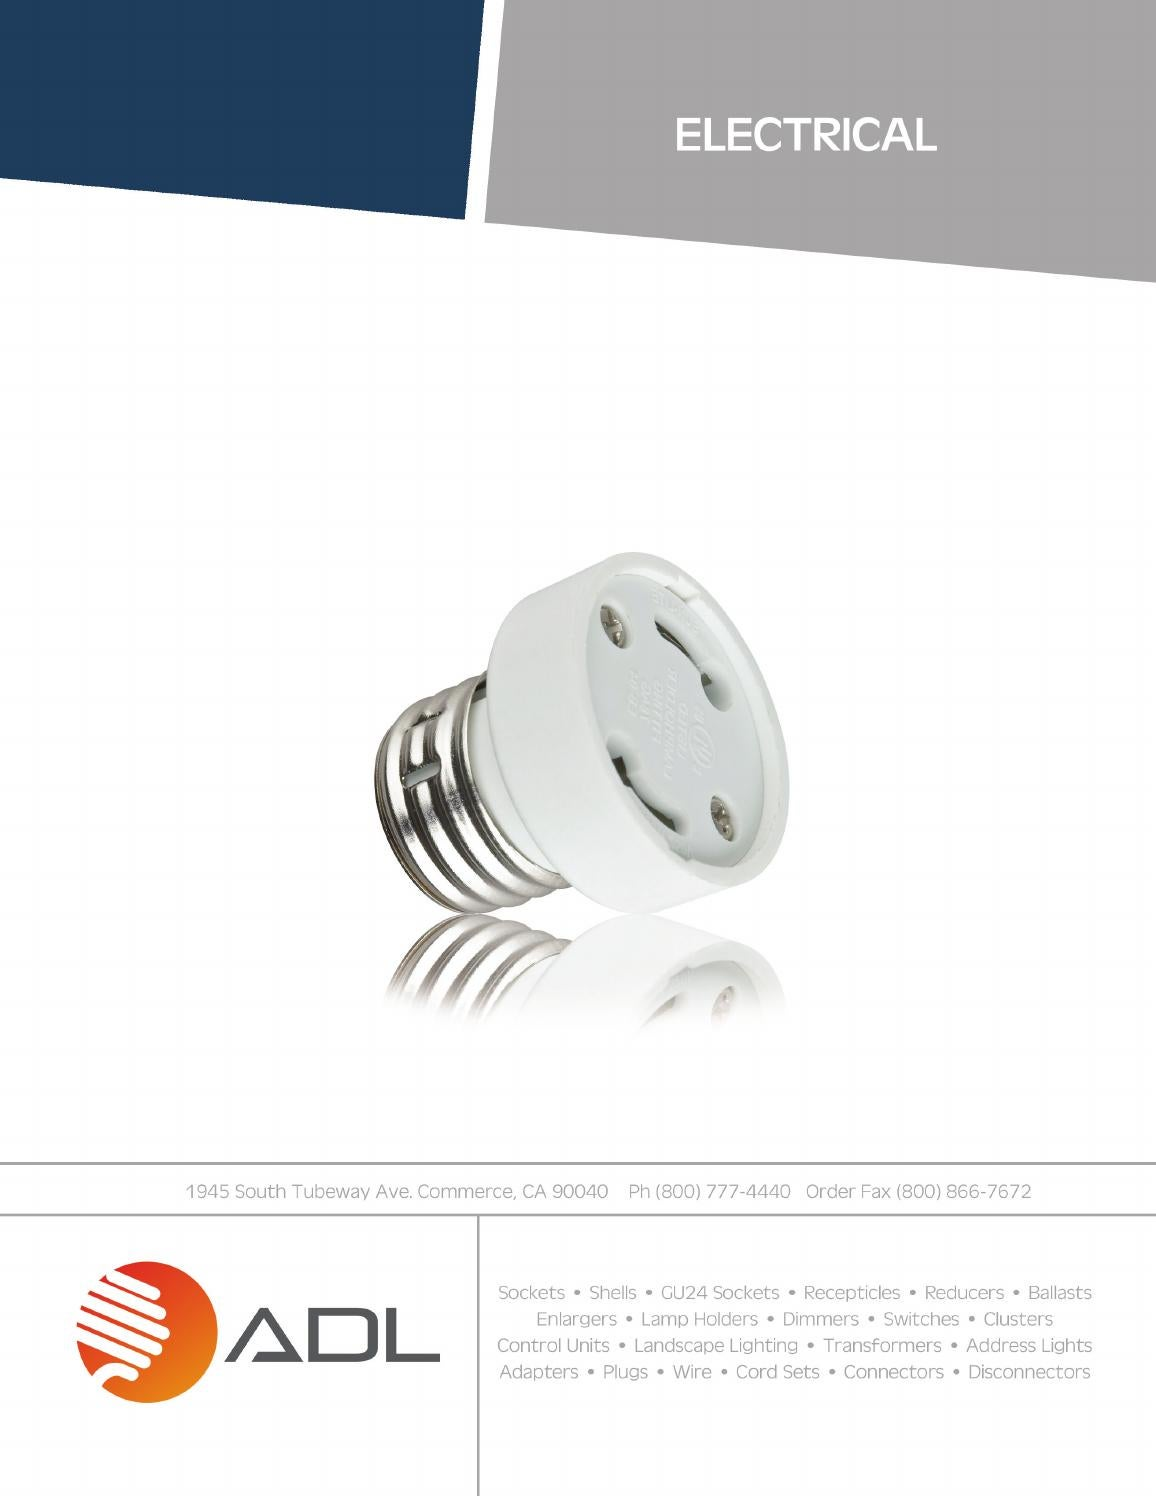 Electrical Catalog By Luminance Issuu Ft 2lamp T5 120volt Residential Electronic Ballast For 21 28watt